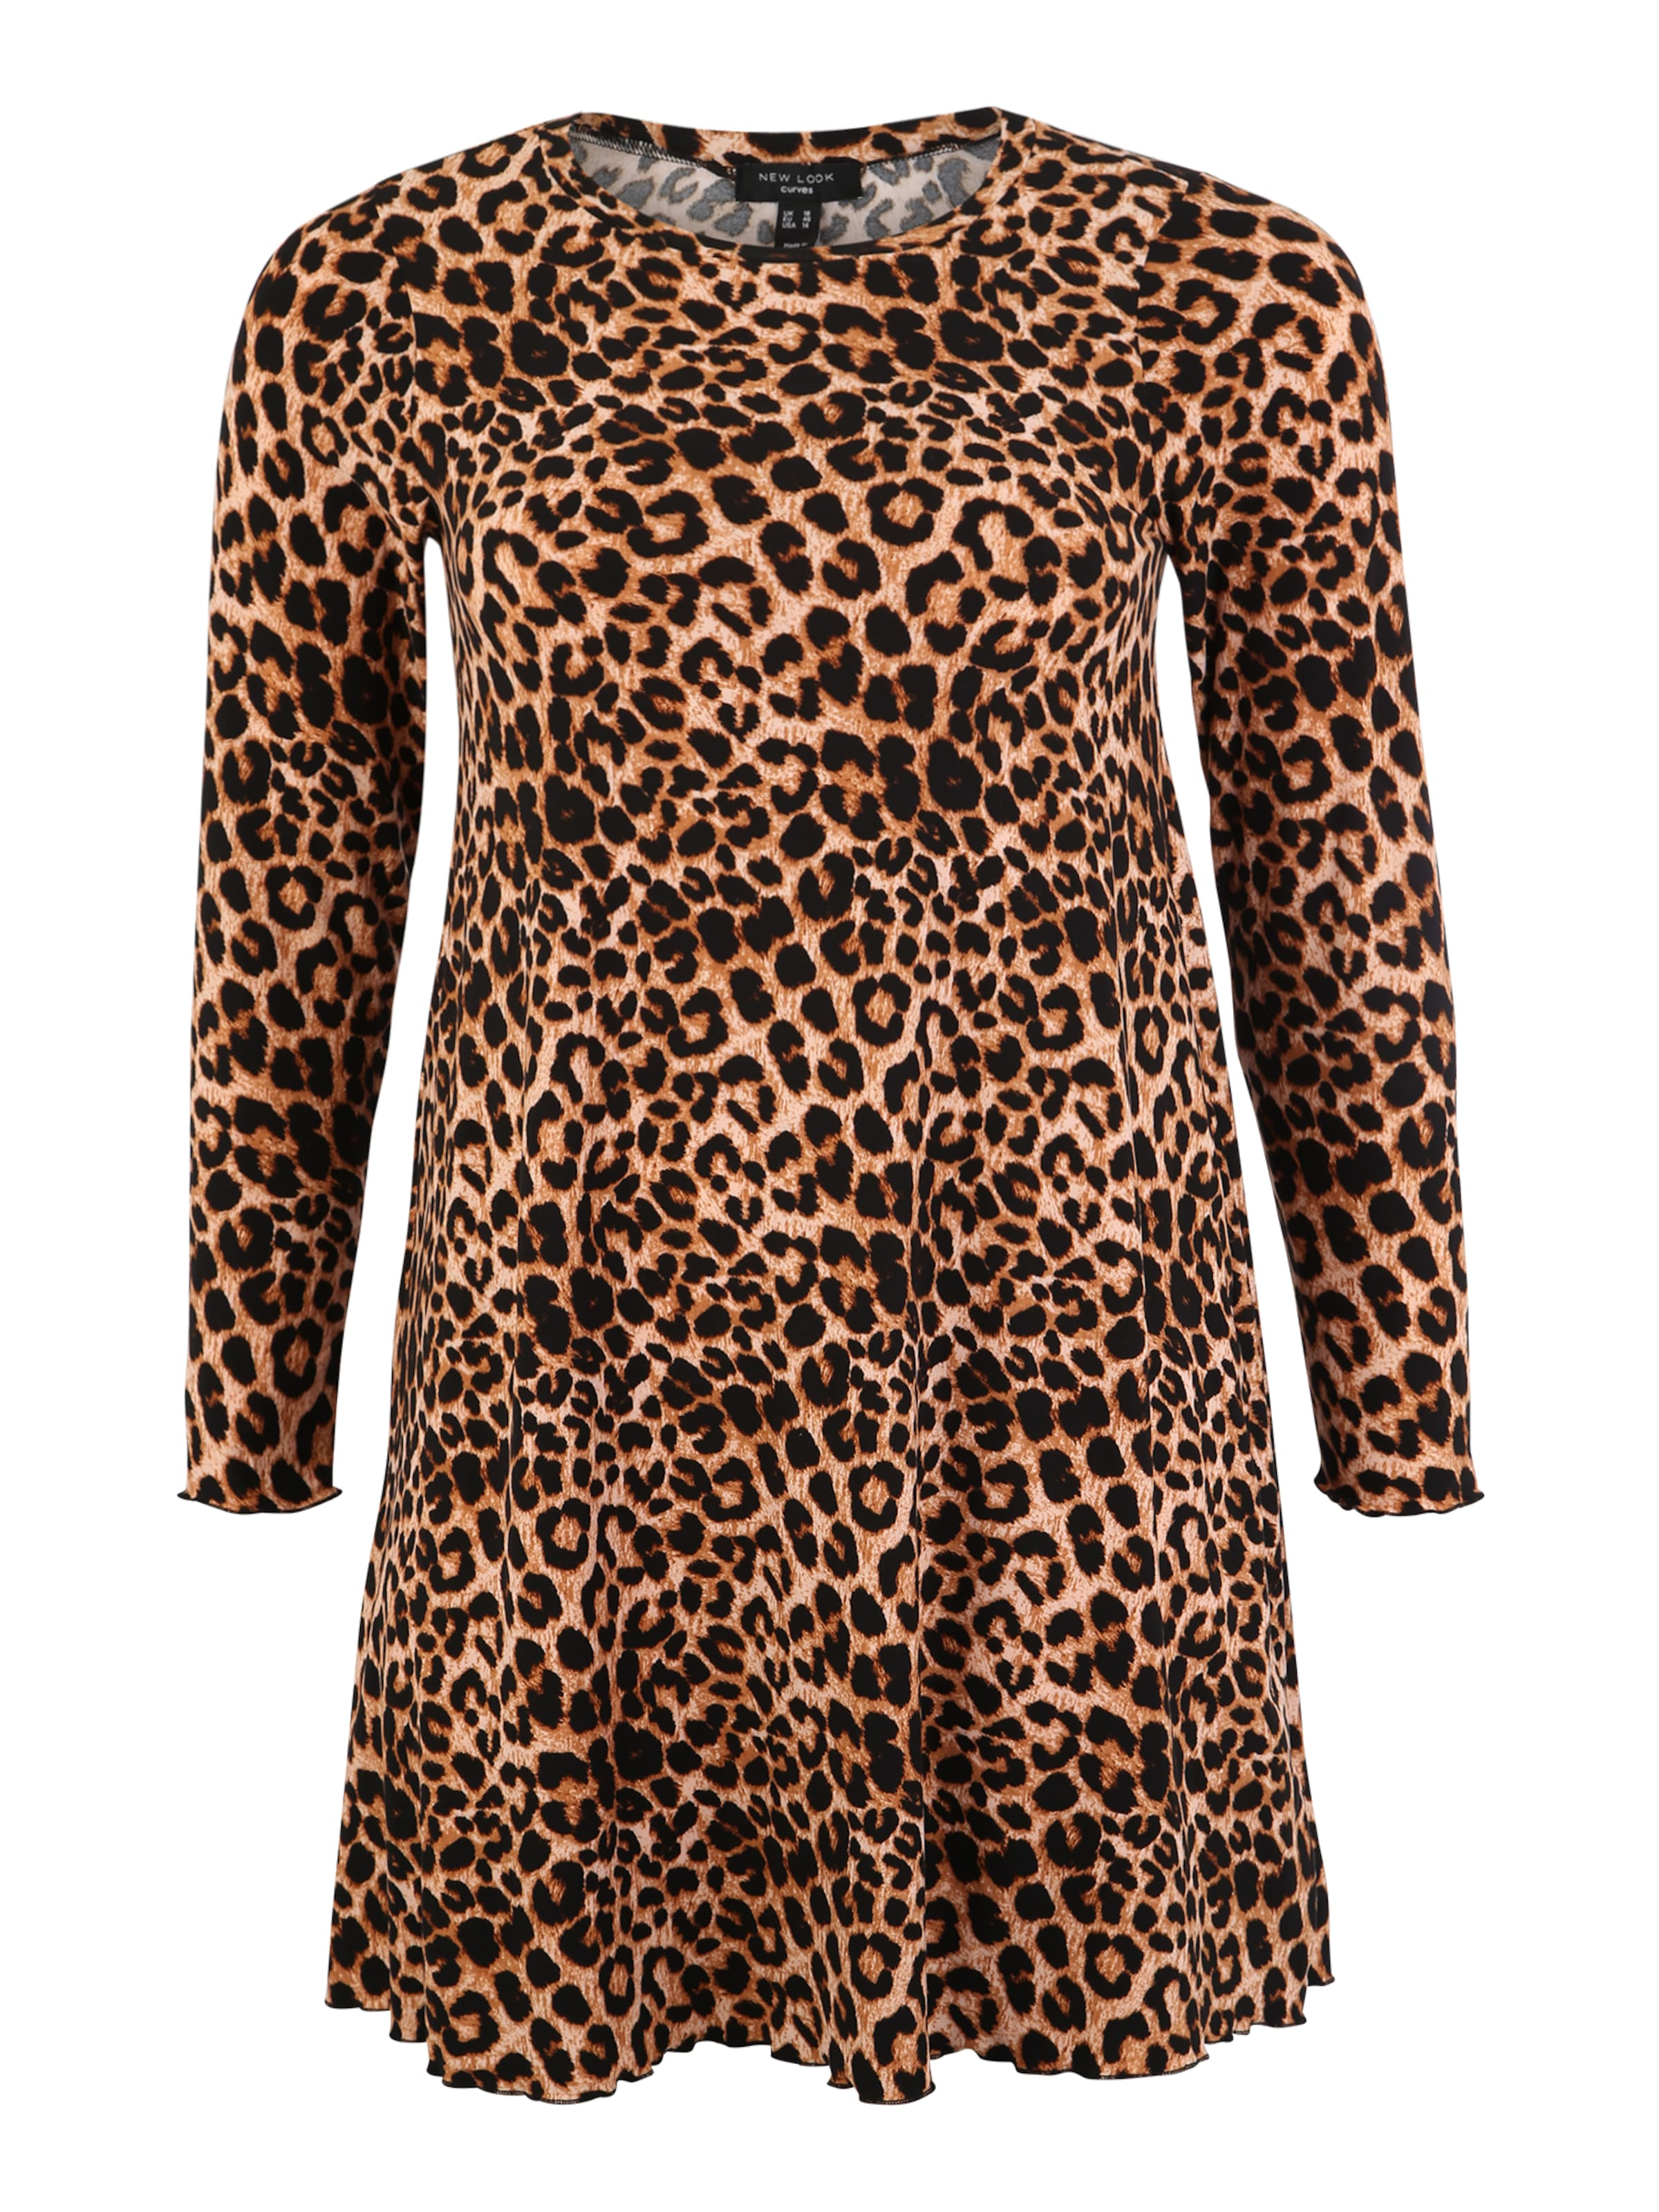 New BraunGelb Kleid Soft In Look Curves 'leopard Touch' 7Ybf6gy